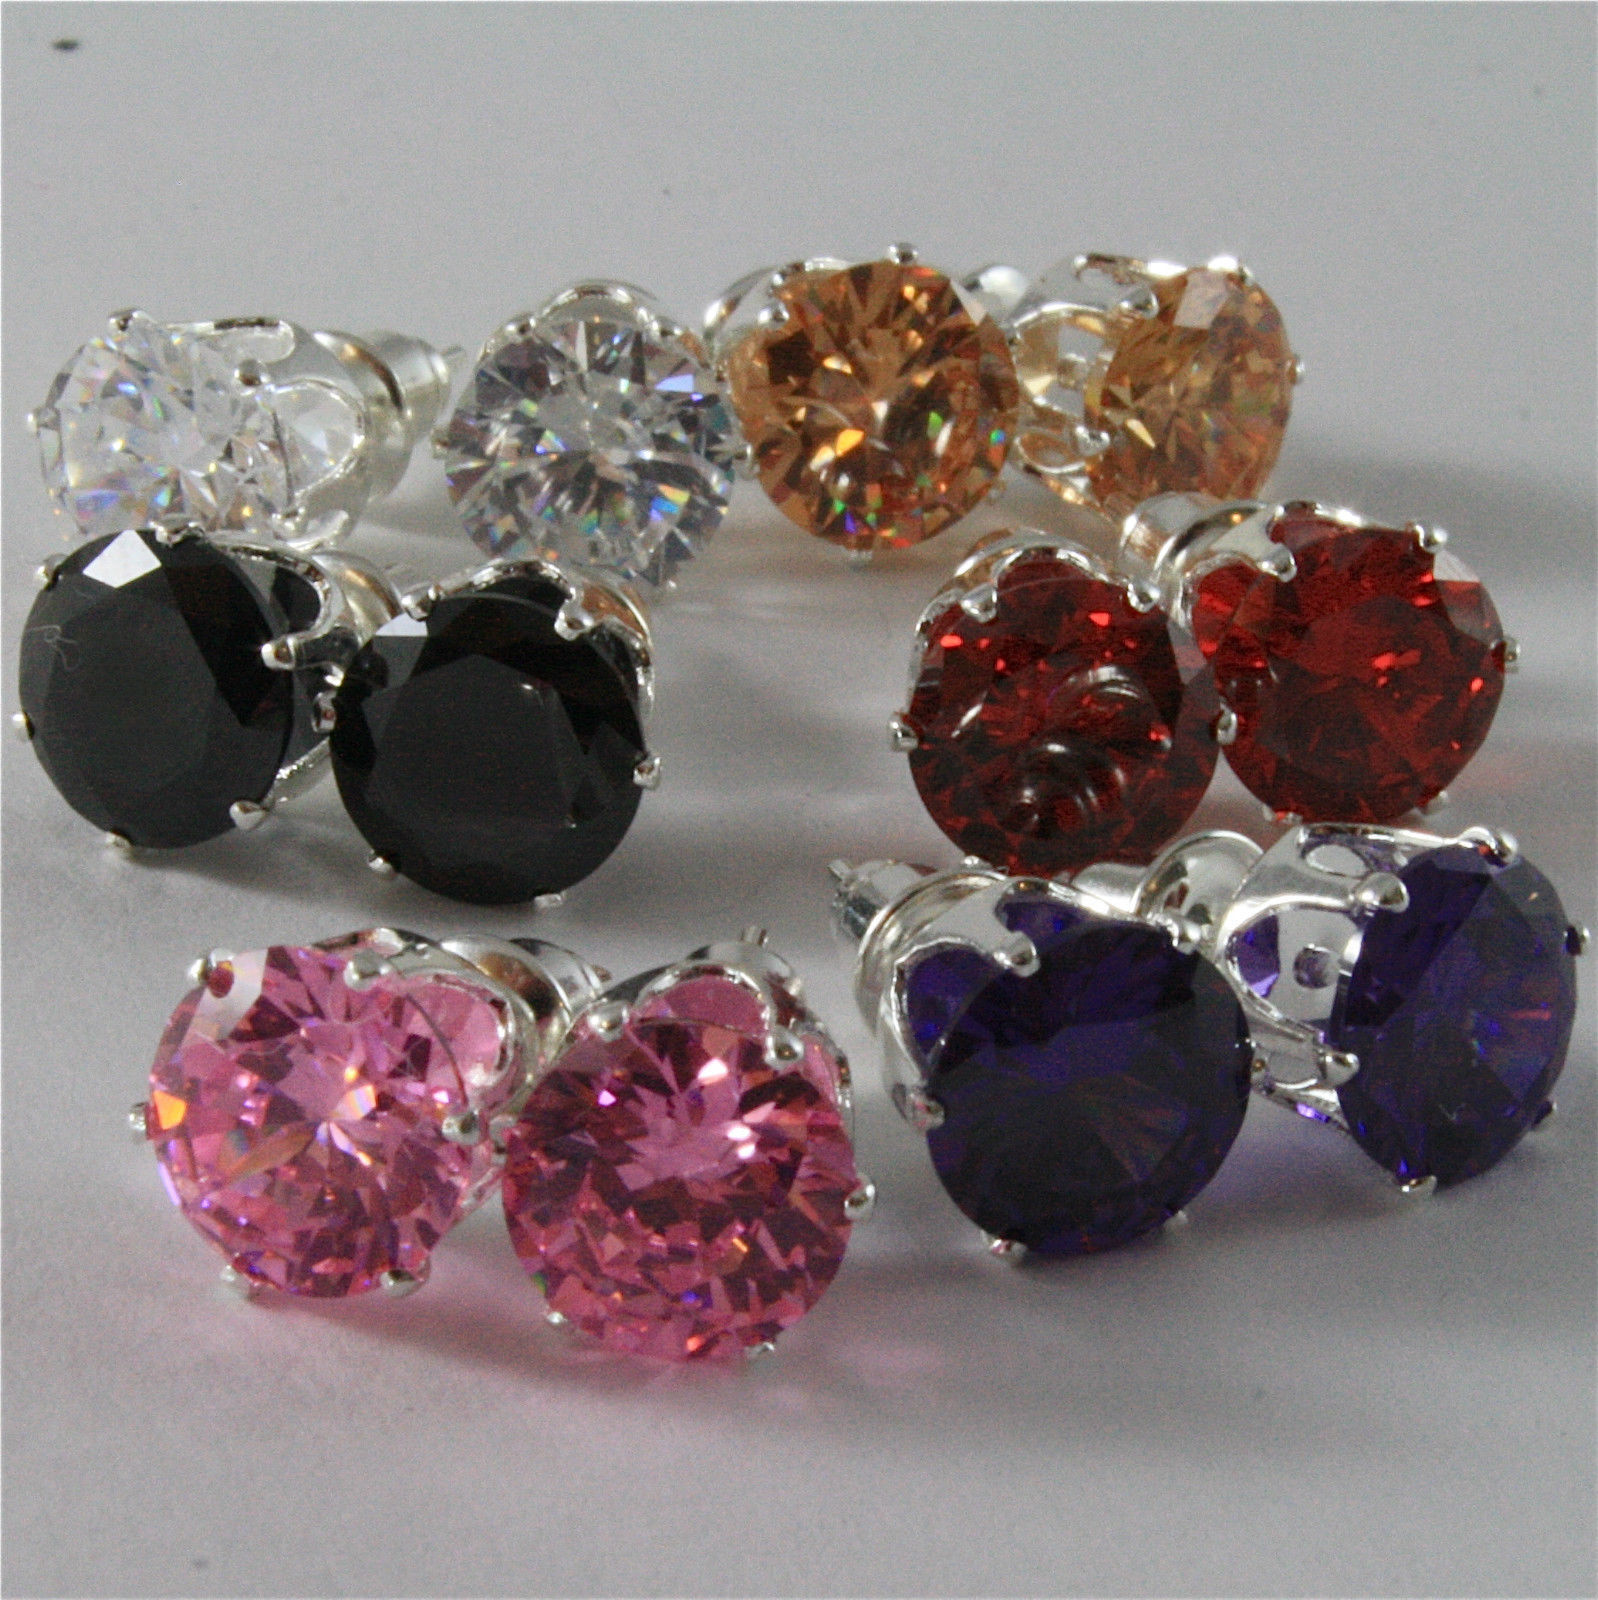 SOLID METAL EARRINGS WITH CUBIC ZIRCONIA FROM 0.26 TO 4.60 CARATS NICKEL FREE